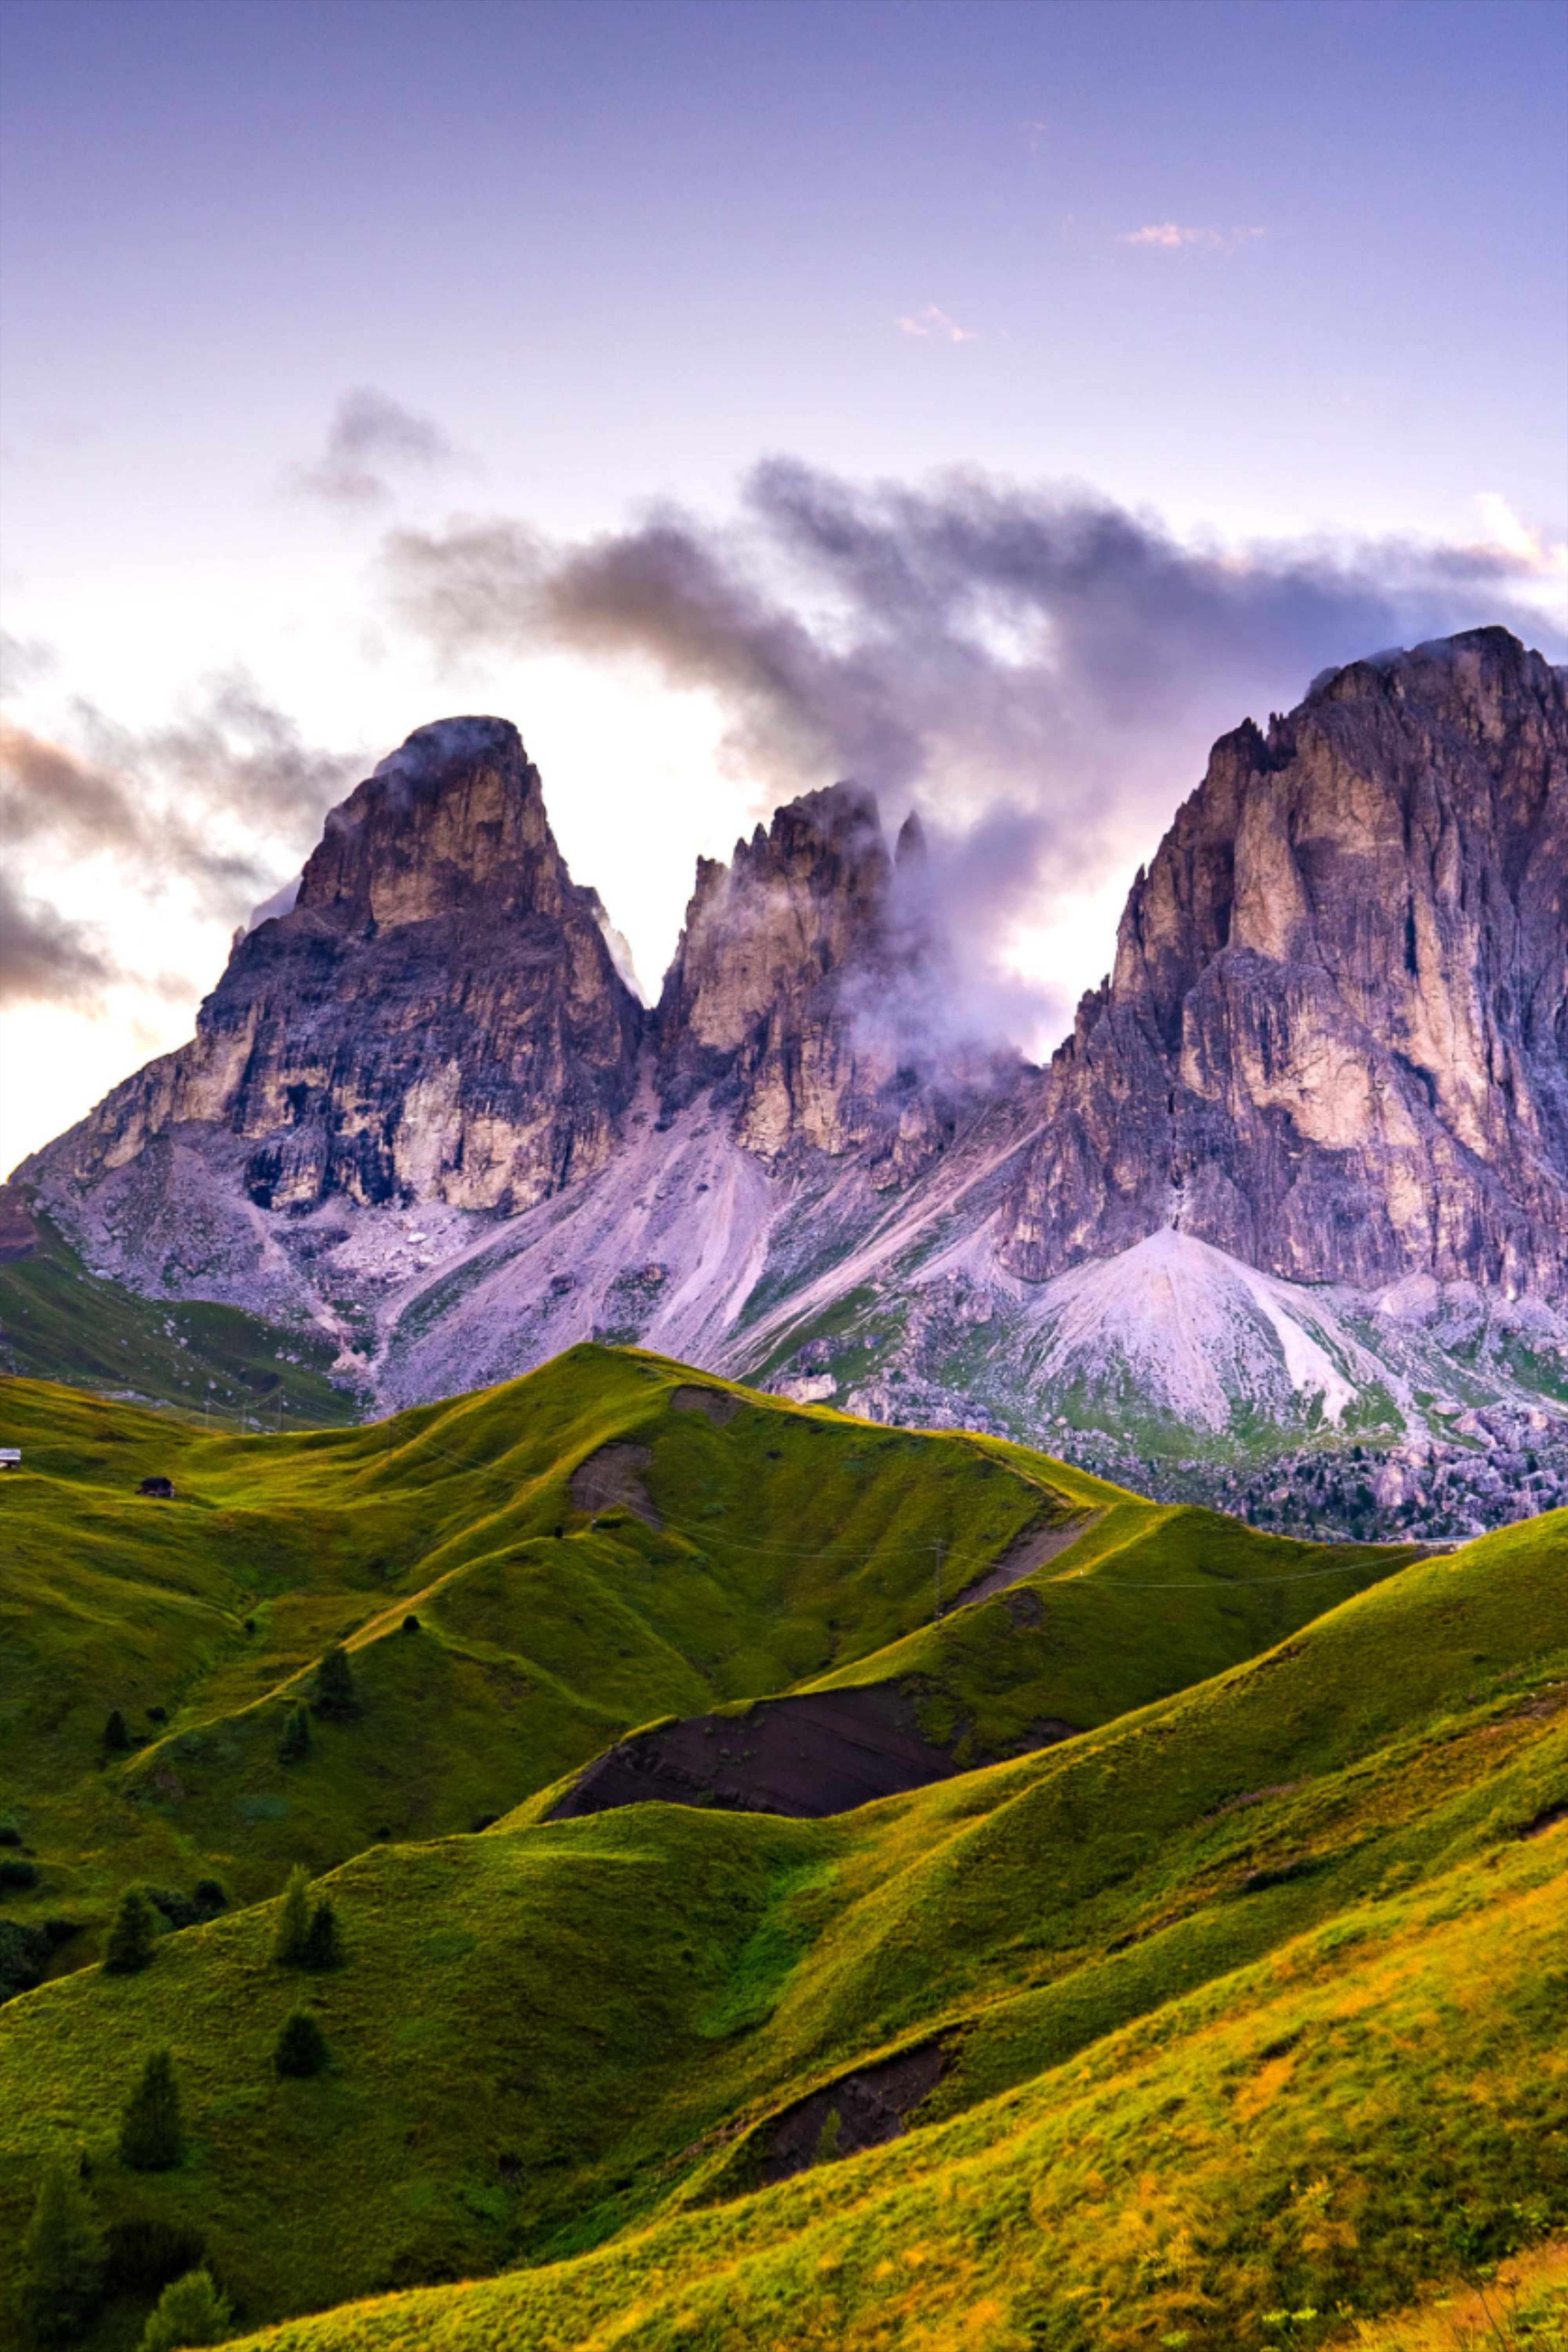 Image By Alessandro Pacilio In 2020 Amazing Hd Wallpapers Landscape Mode Phone Wallpaper